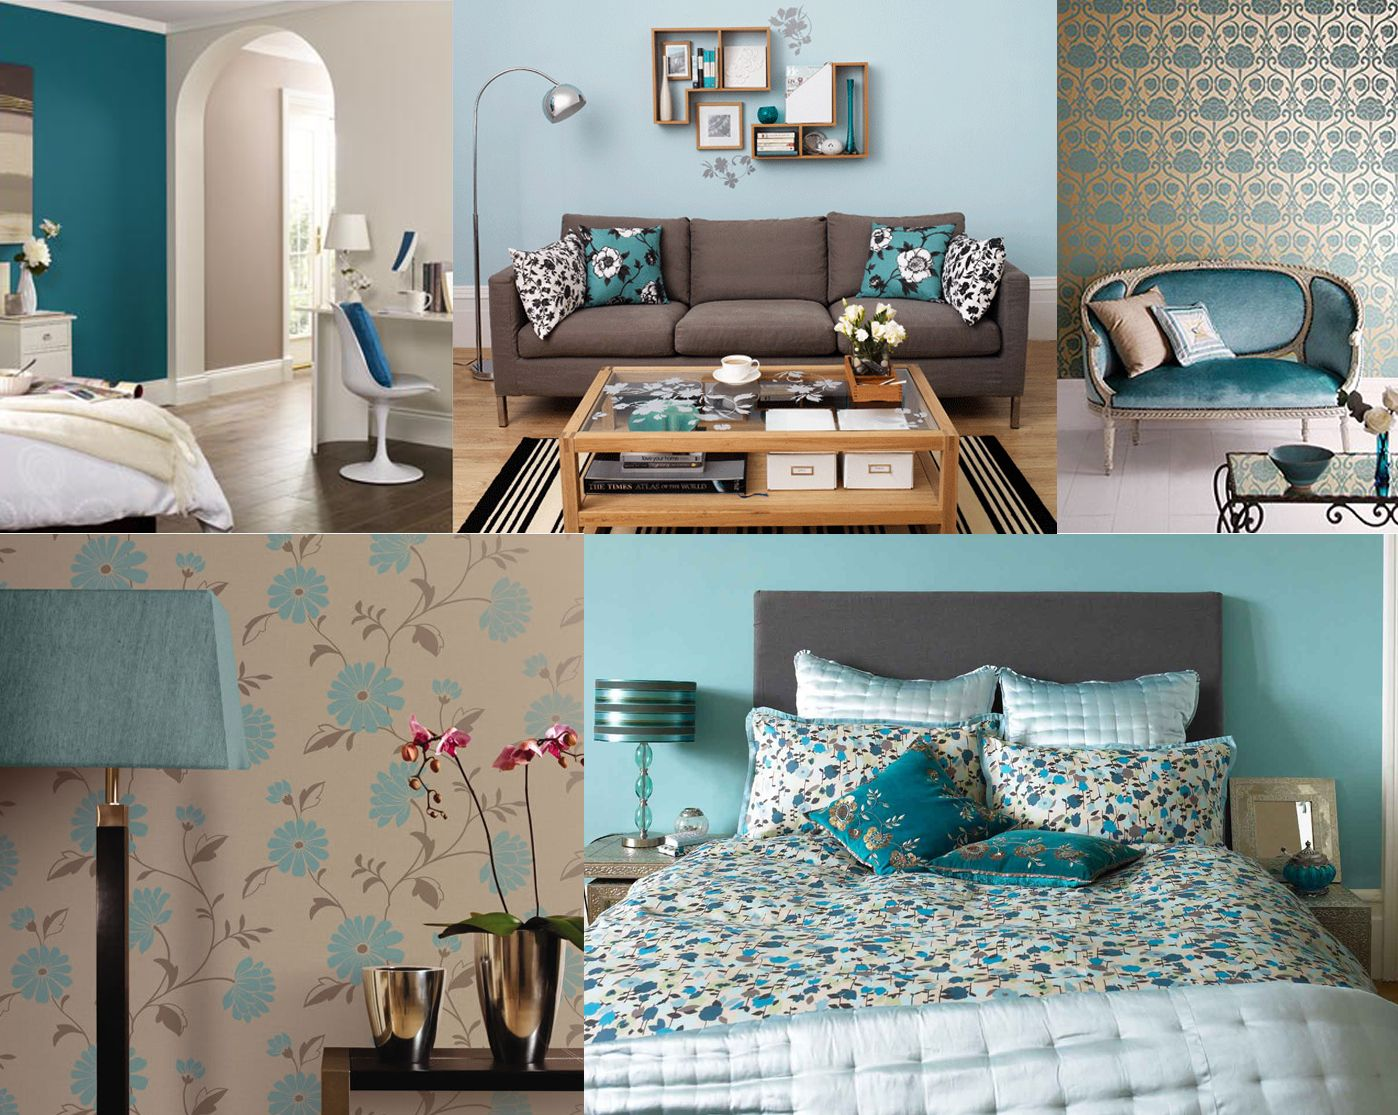 How To Use Teal And Taupe In Your Interior Design Teal Living Rooms Interior Design Living Room Color Schemes #taupe #and #gray #living #room